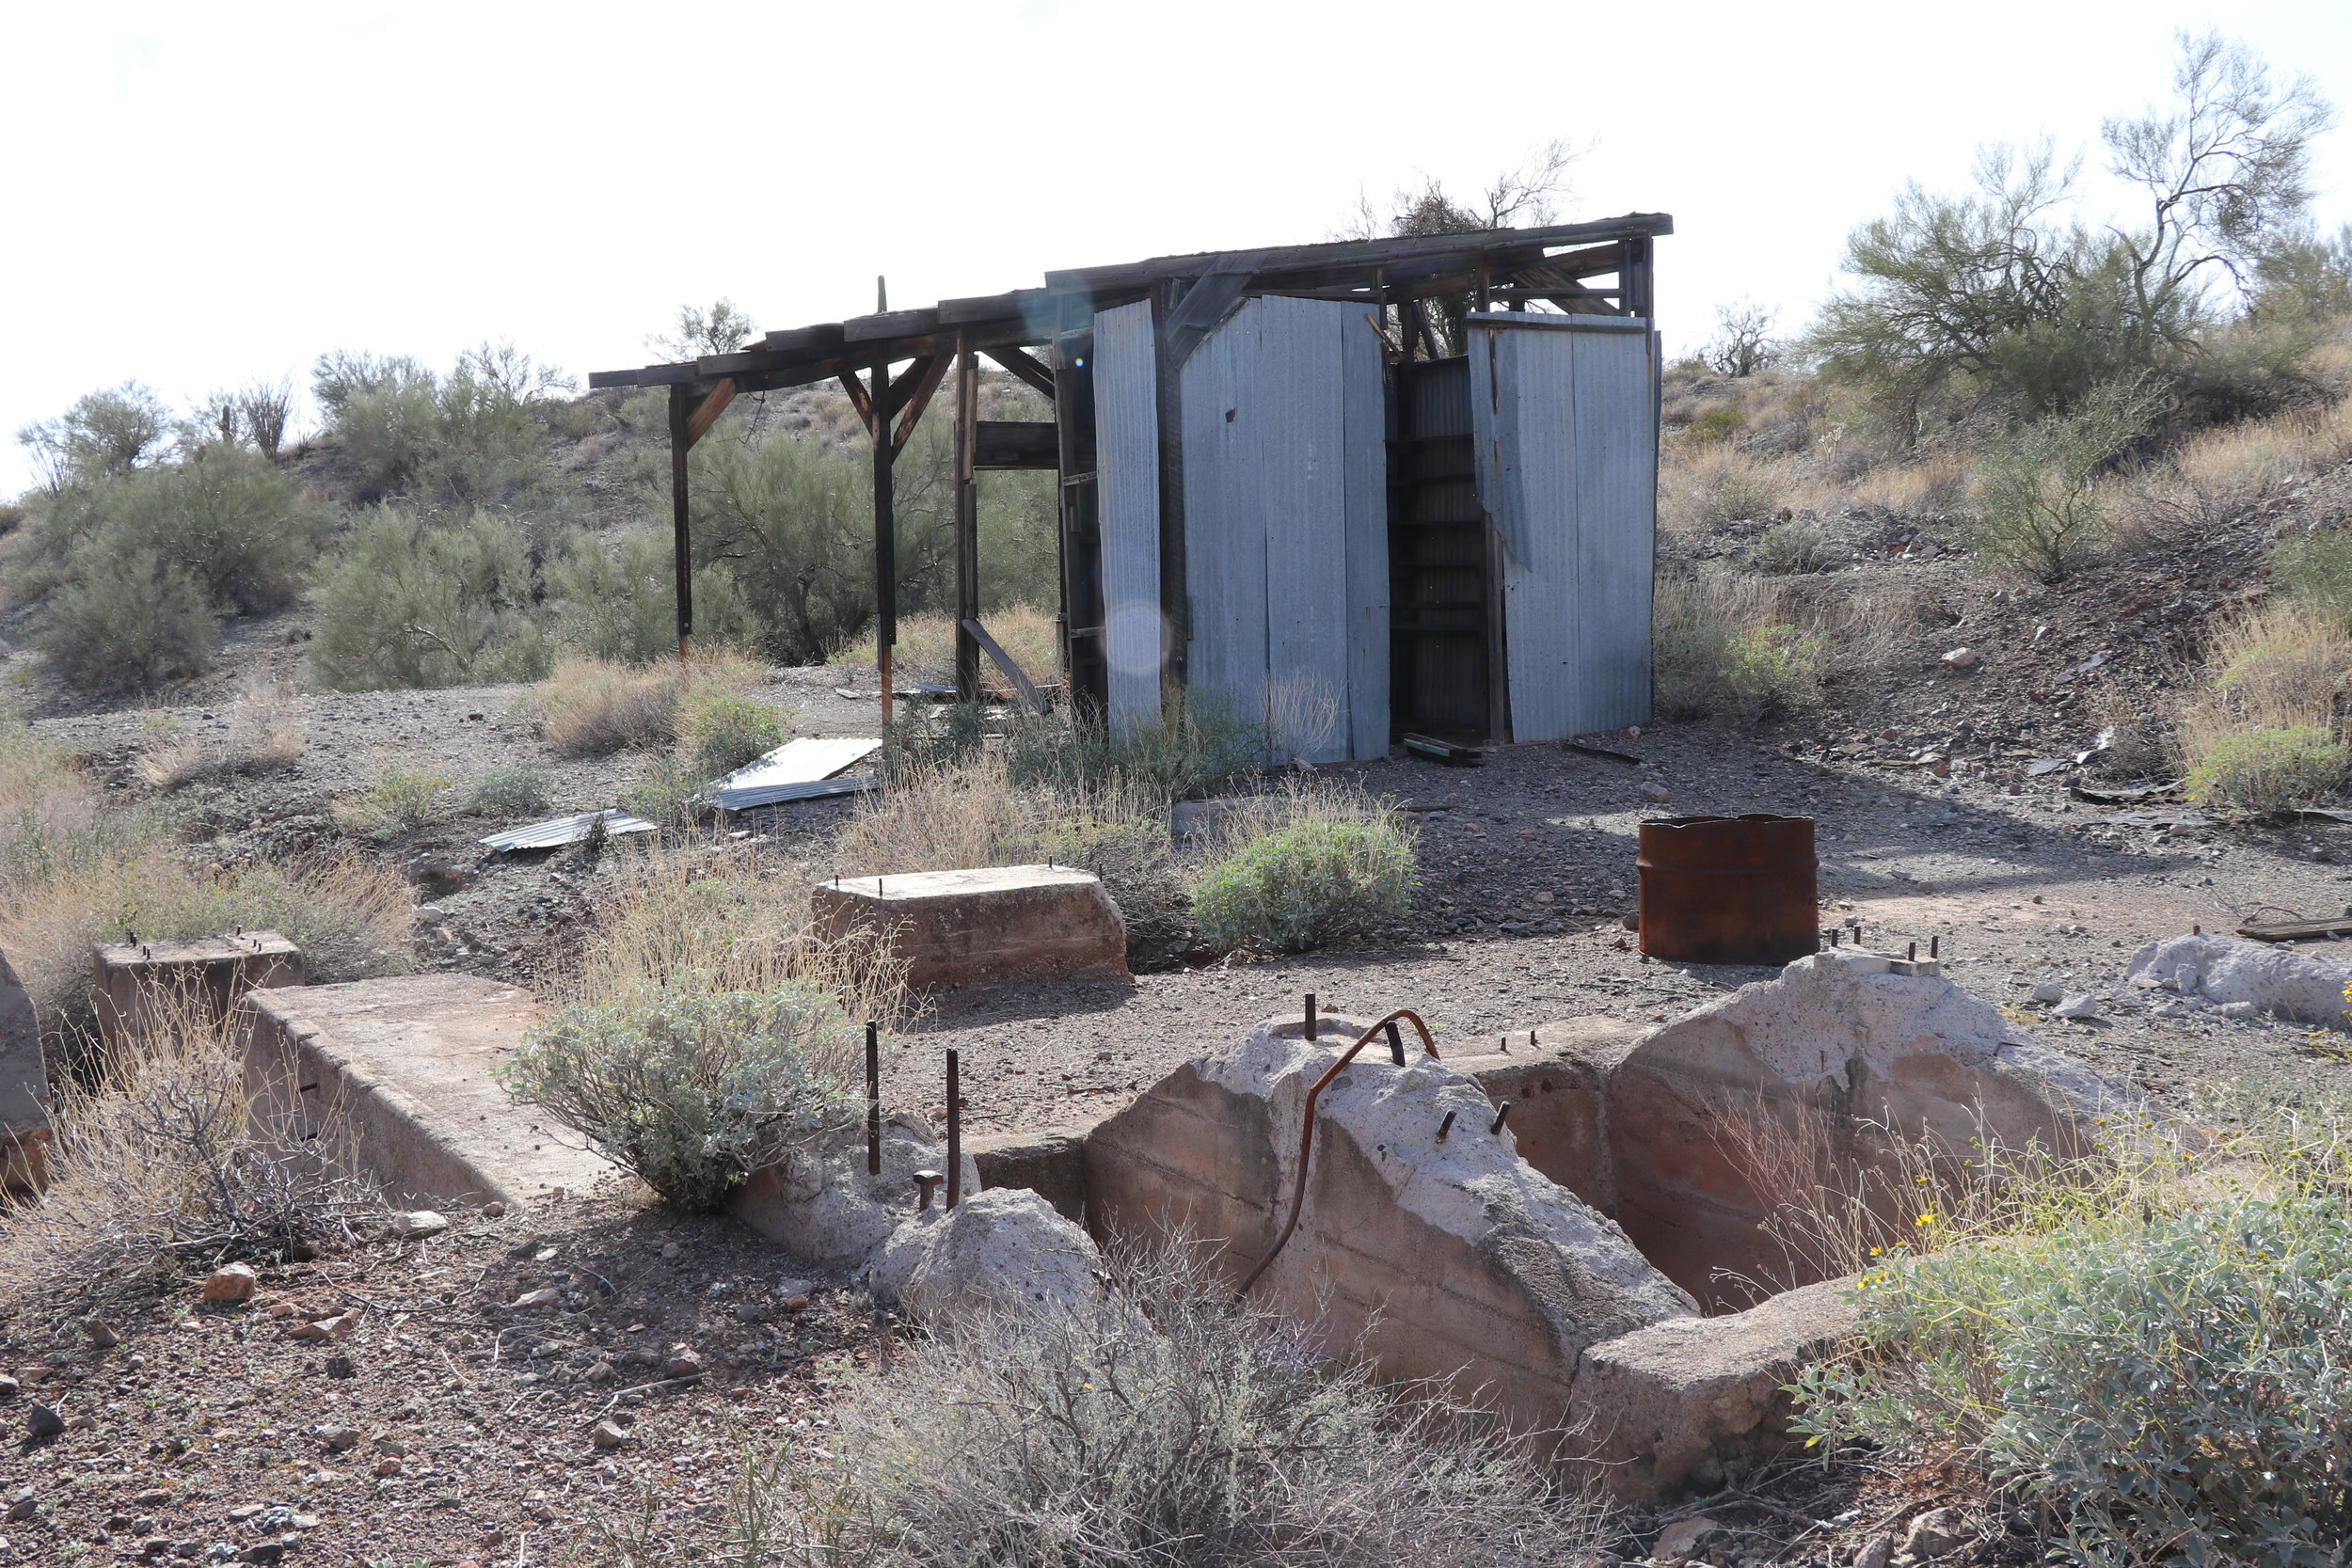 Cement foundations and an old shed remain near the mouth of the mine.